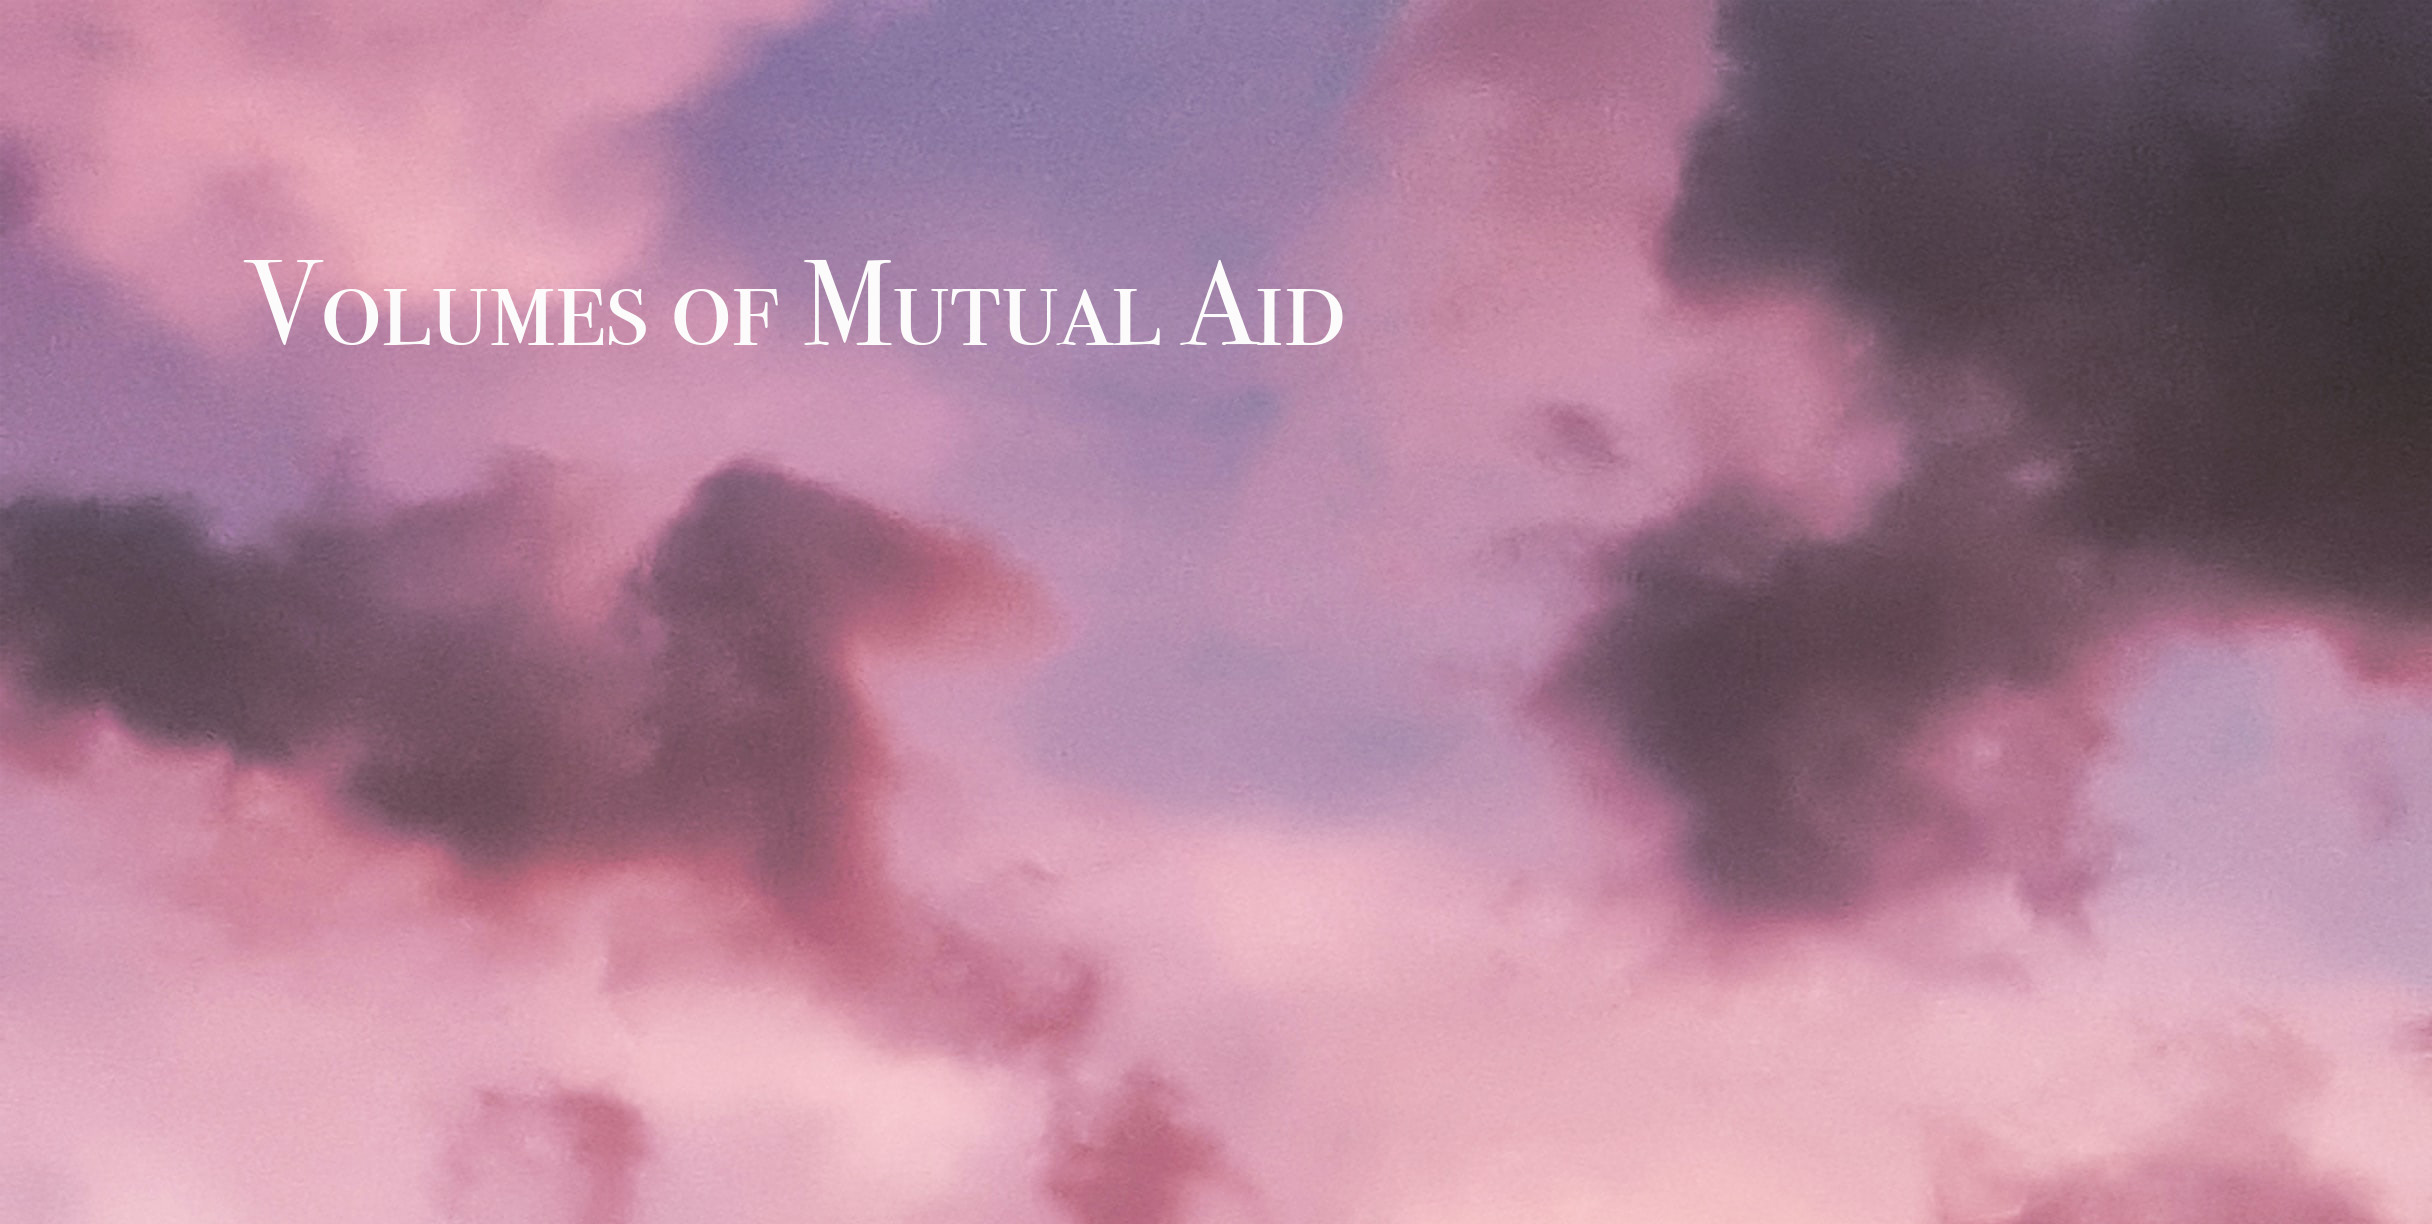 A pink cloudy sky featuring the text Volumes of Mutual Aid